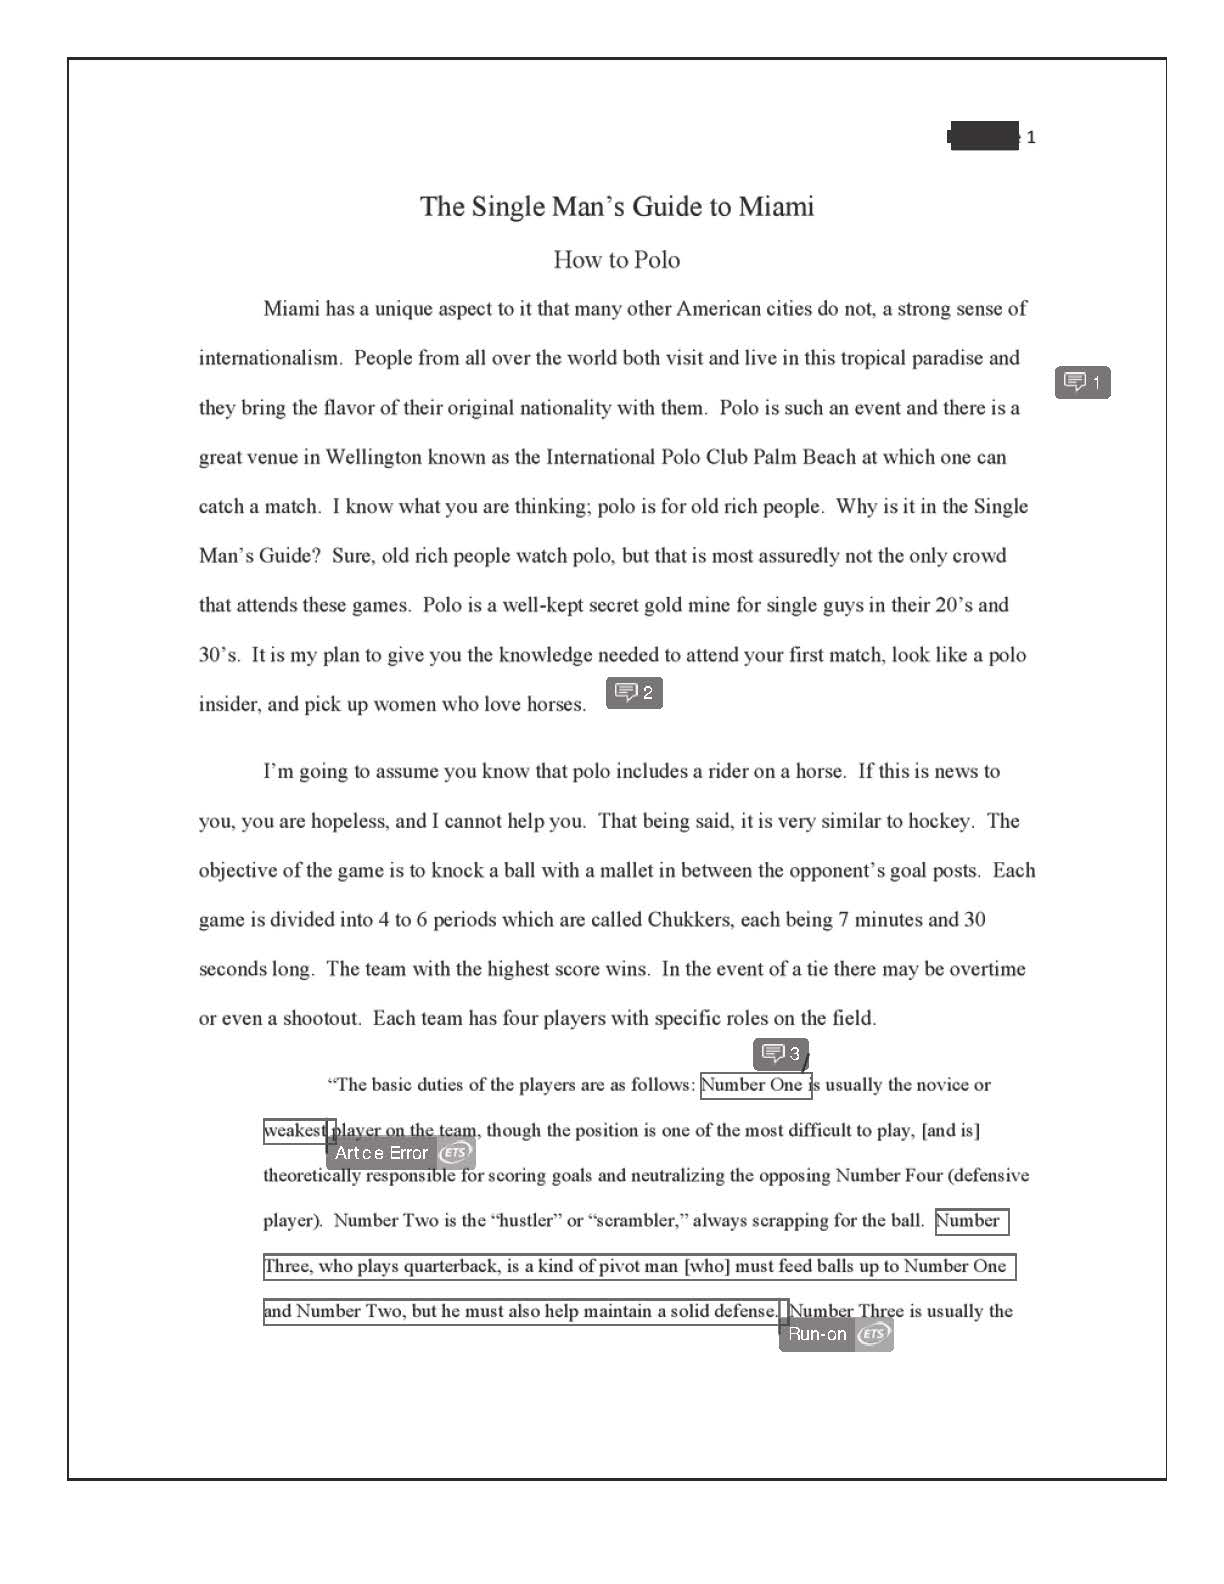 005 Informative Essay Topics Essays Sample Funny Argumentative For Middle School Final How To Polo Redacted P College Students Hilarious Good Remarkable Paper Full